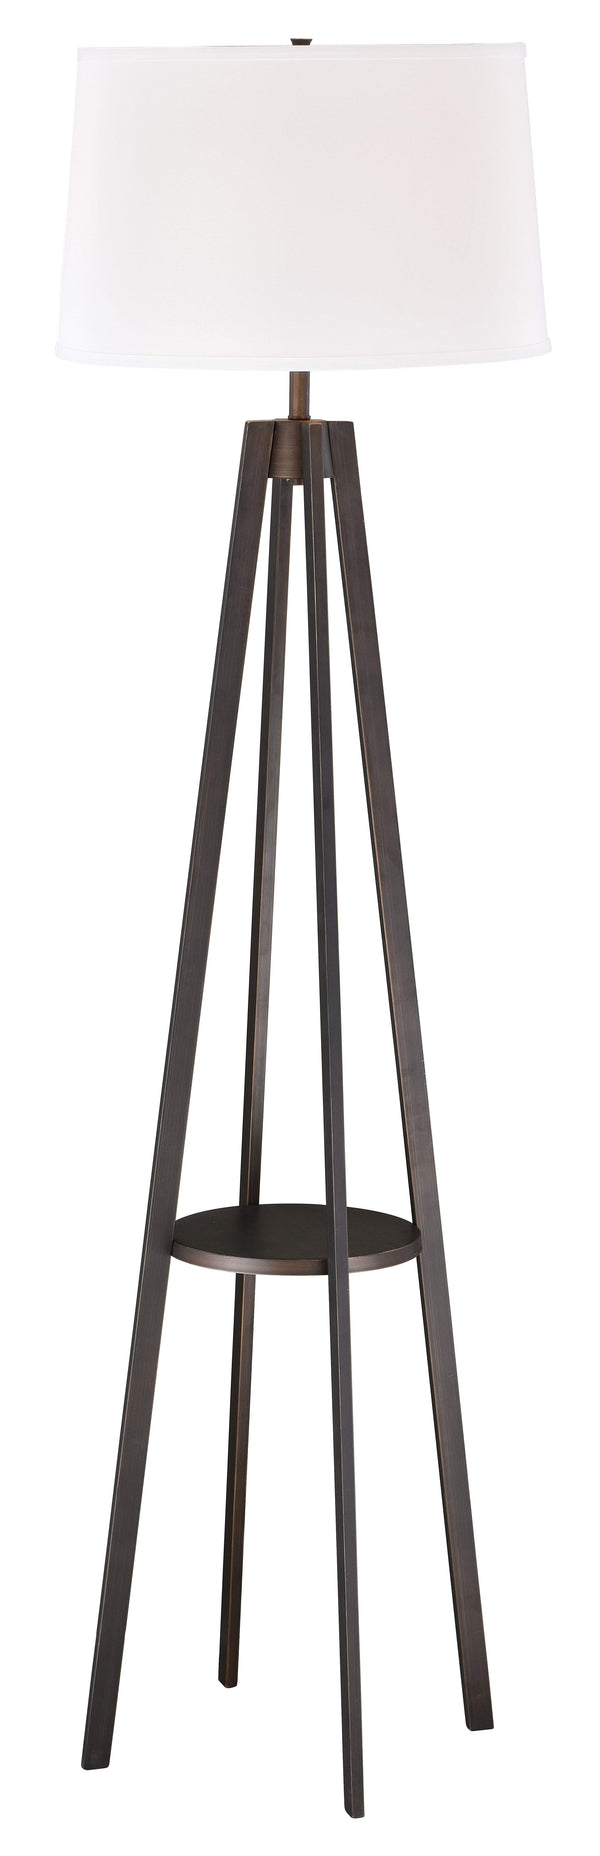 The Vaxcel Perkins Floor Lamp in Sienna Bronze Finish L0007